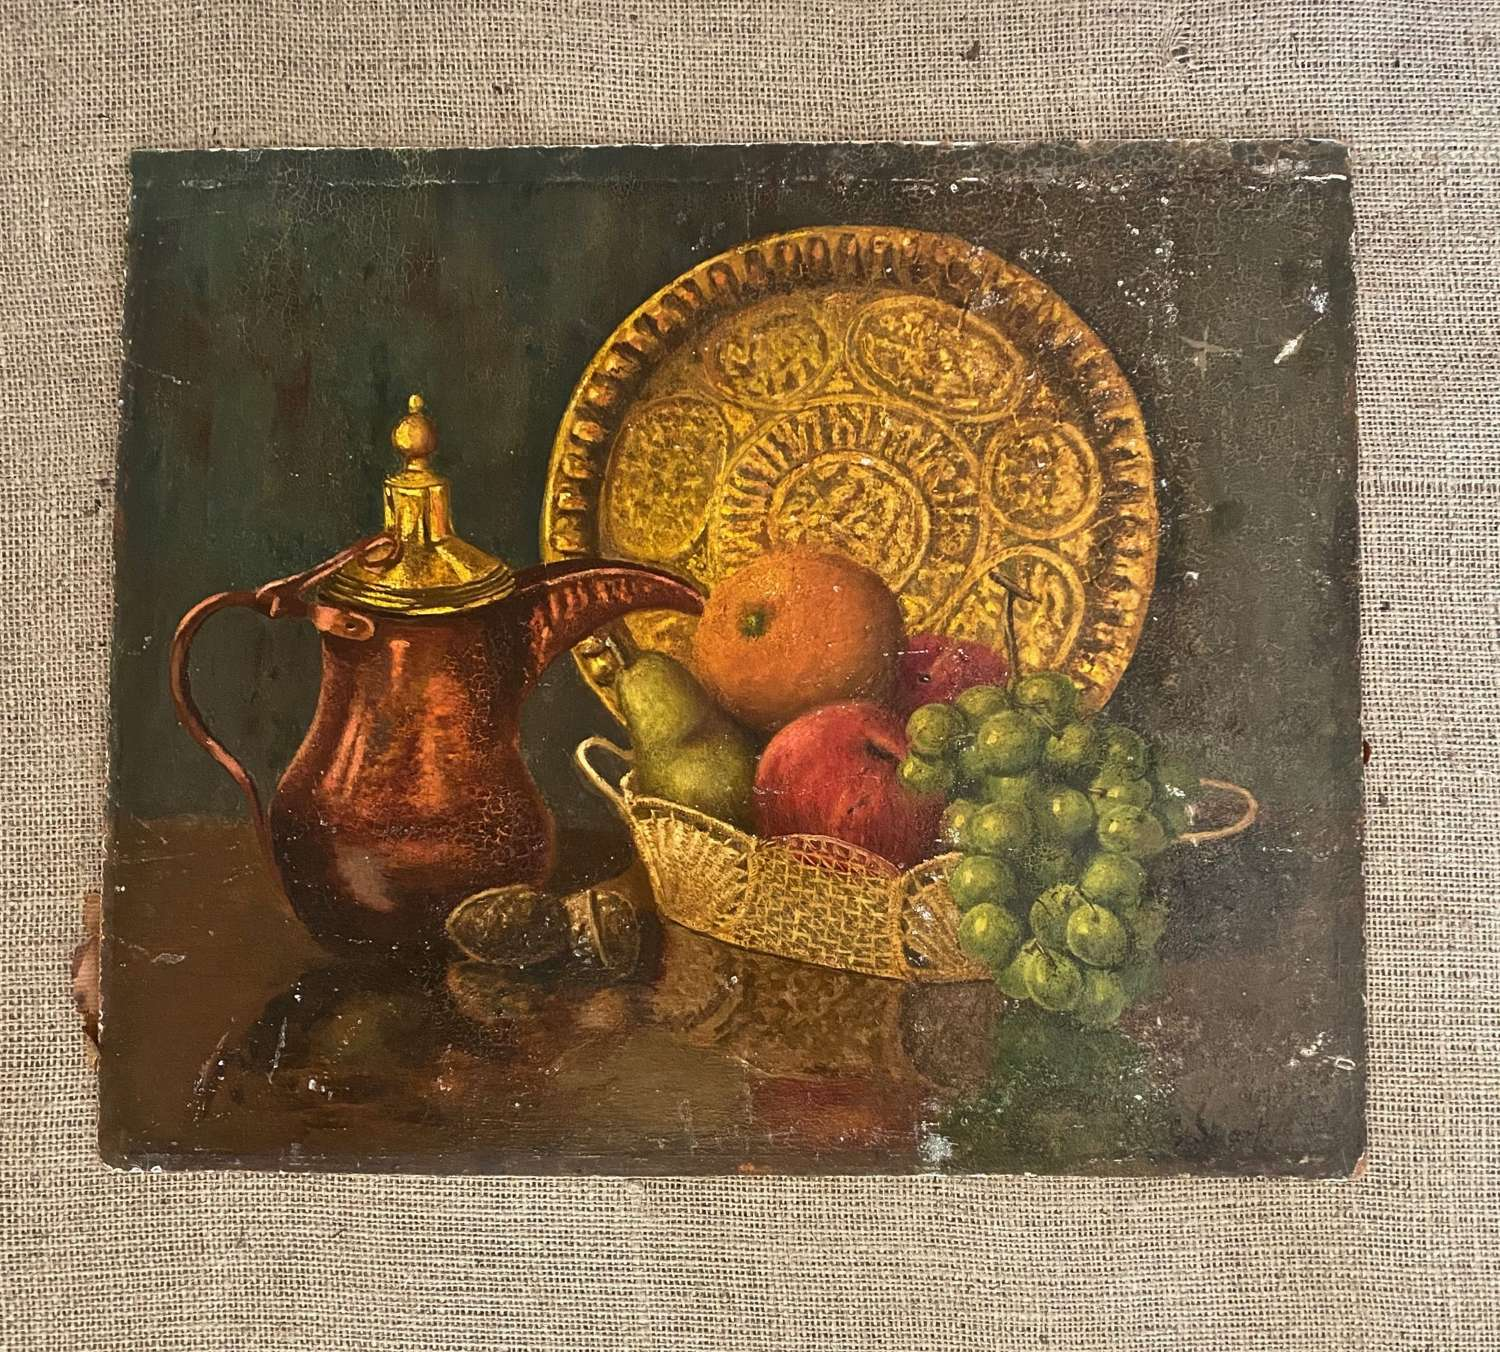 Mid century overvarnished oil painting